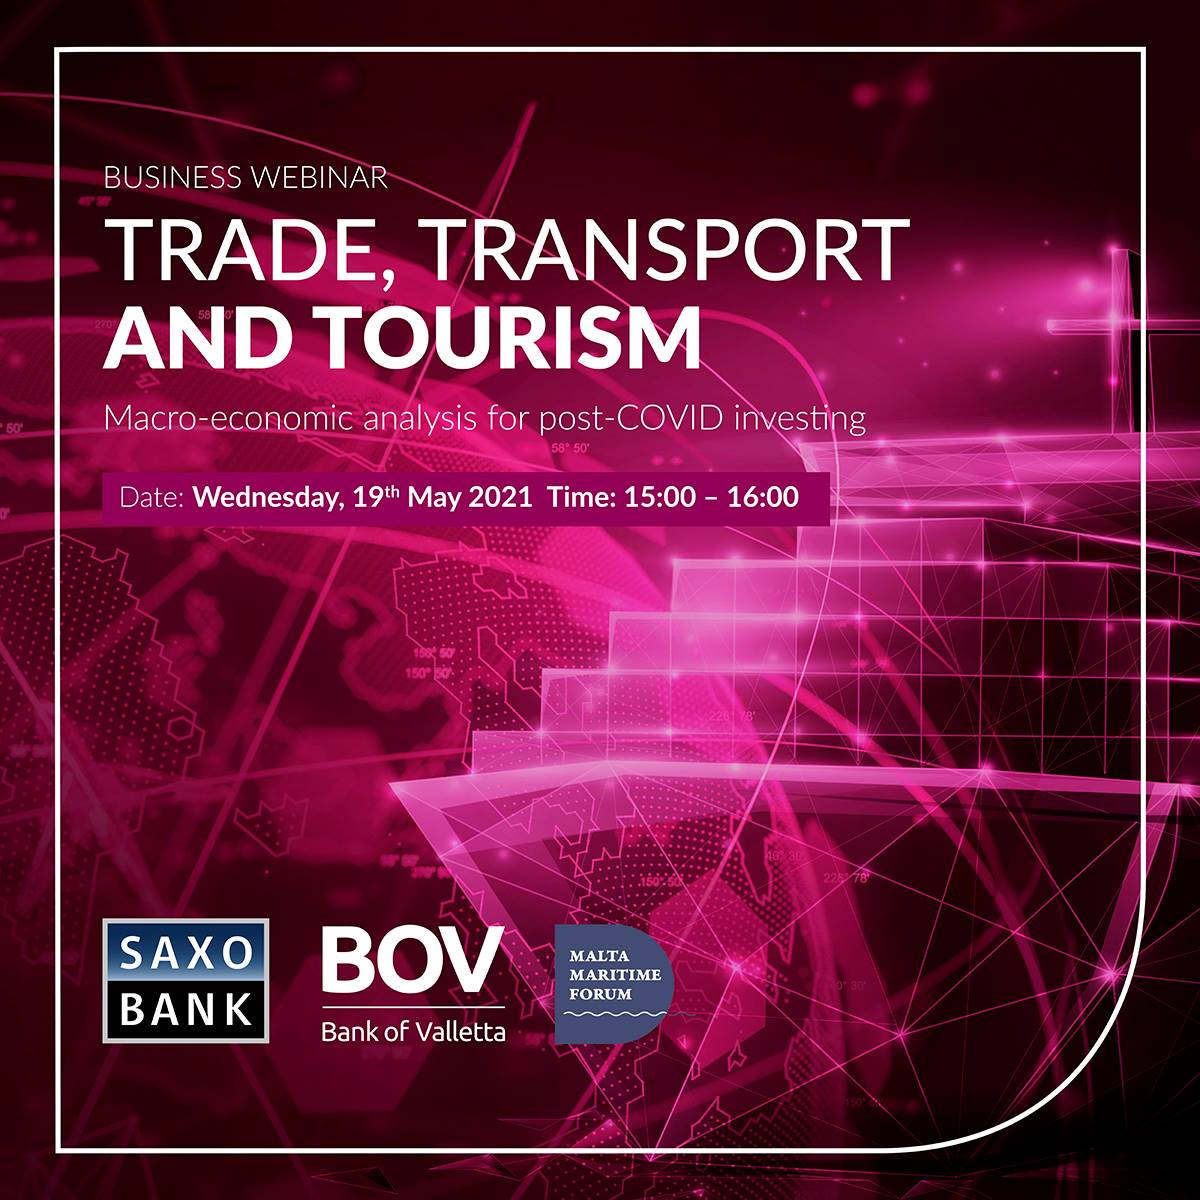 The future of Trade, Transport and Tourism in Malta – a business webinar by BOV, Saxo Bank and Malta Maritime Forum